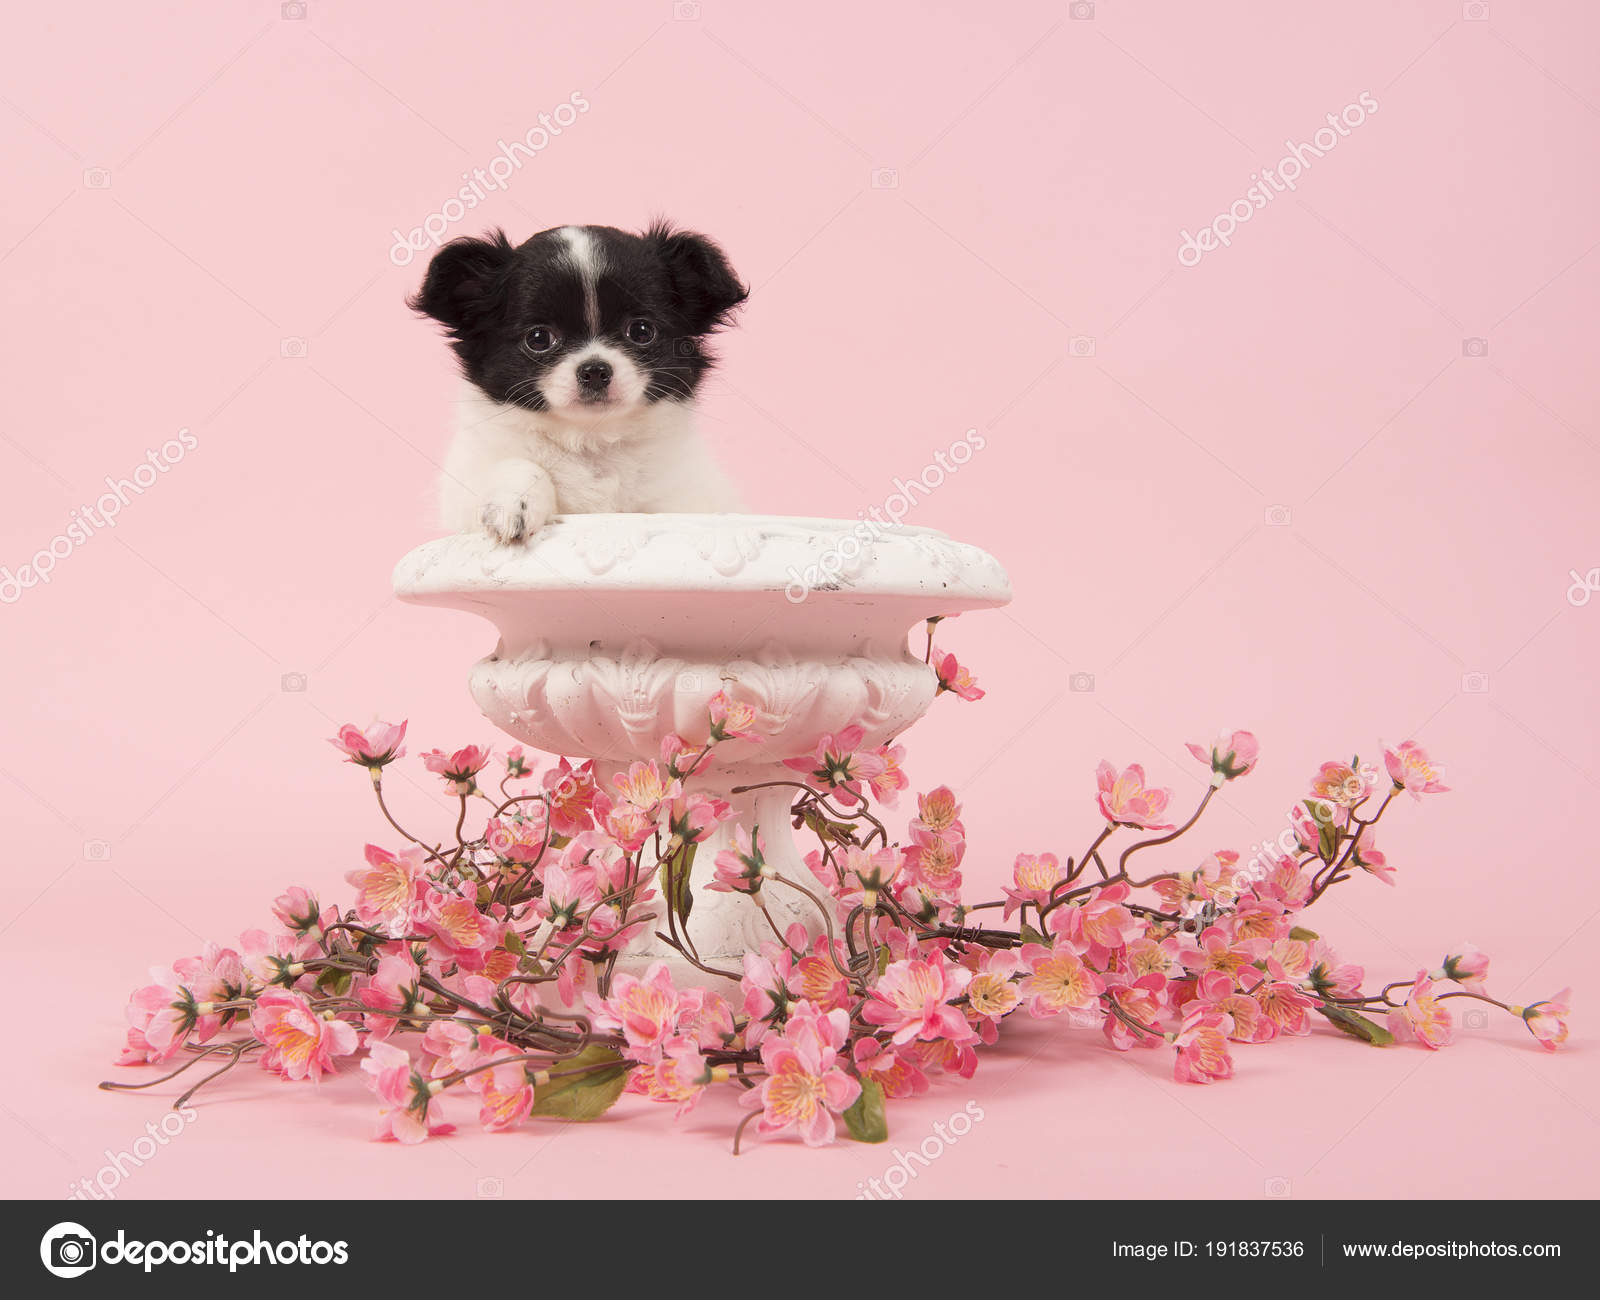 Black And White Chihuahua Puppy In A White Flower Pot Surrounded